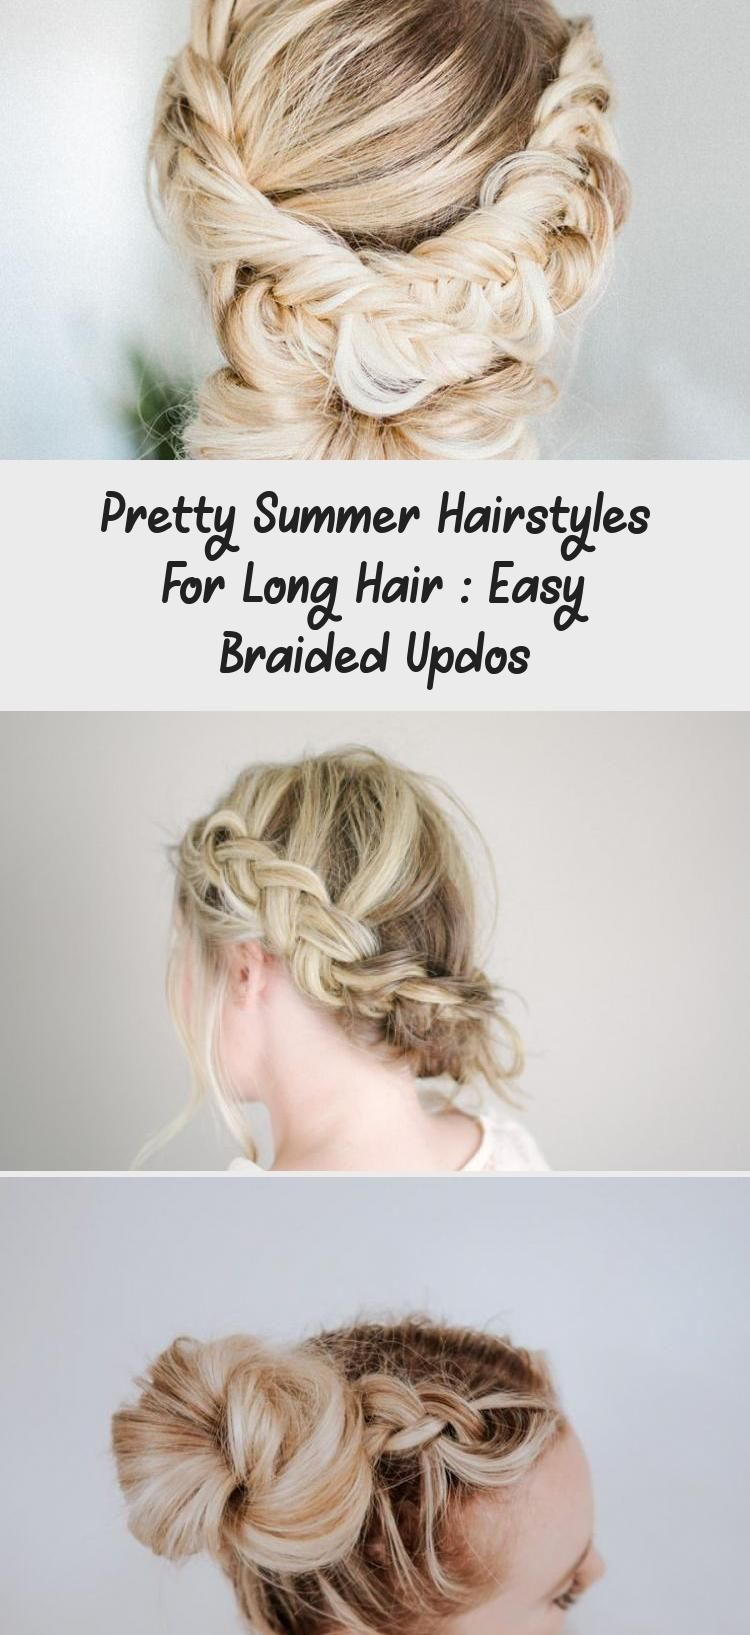 Pretty Summer Hairstyles For Long Hair : Easy Braided Updos – Hairstyle